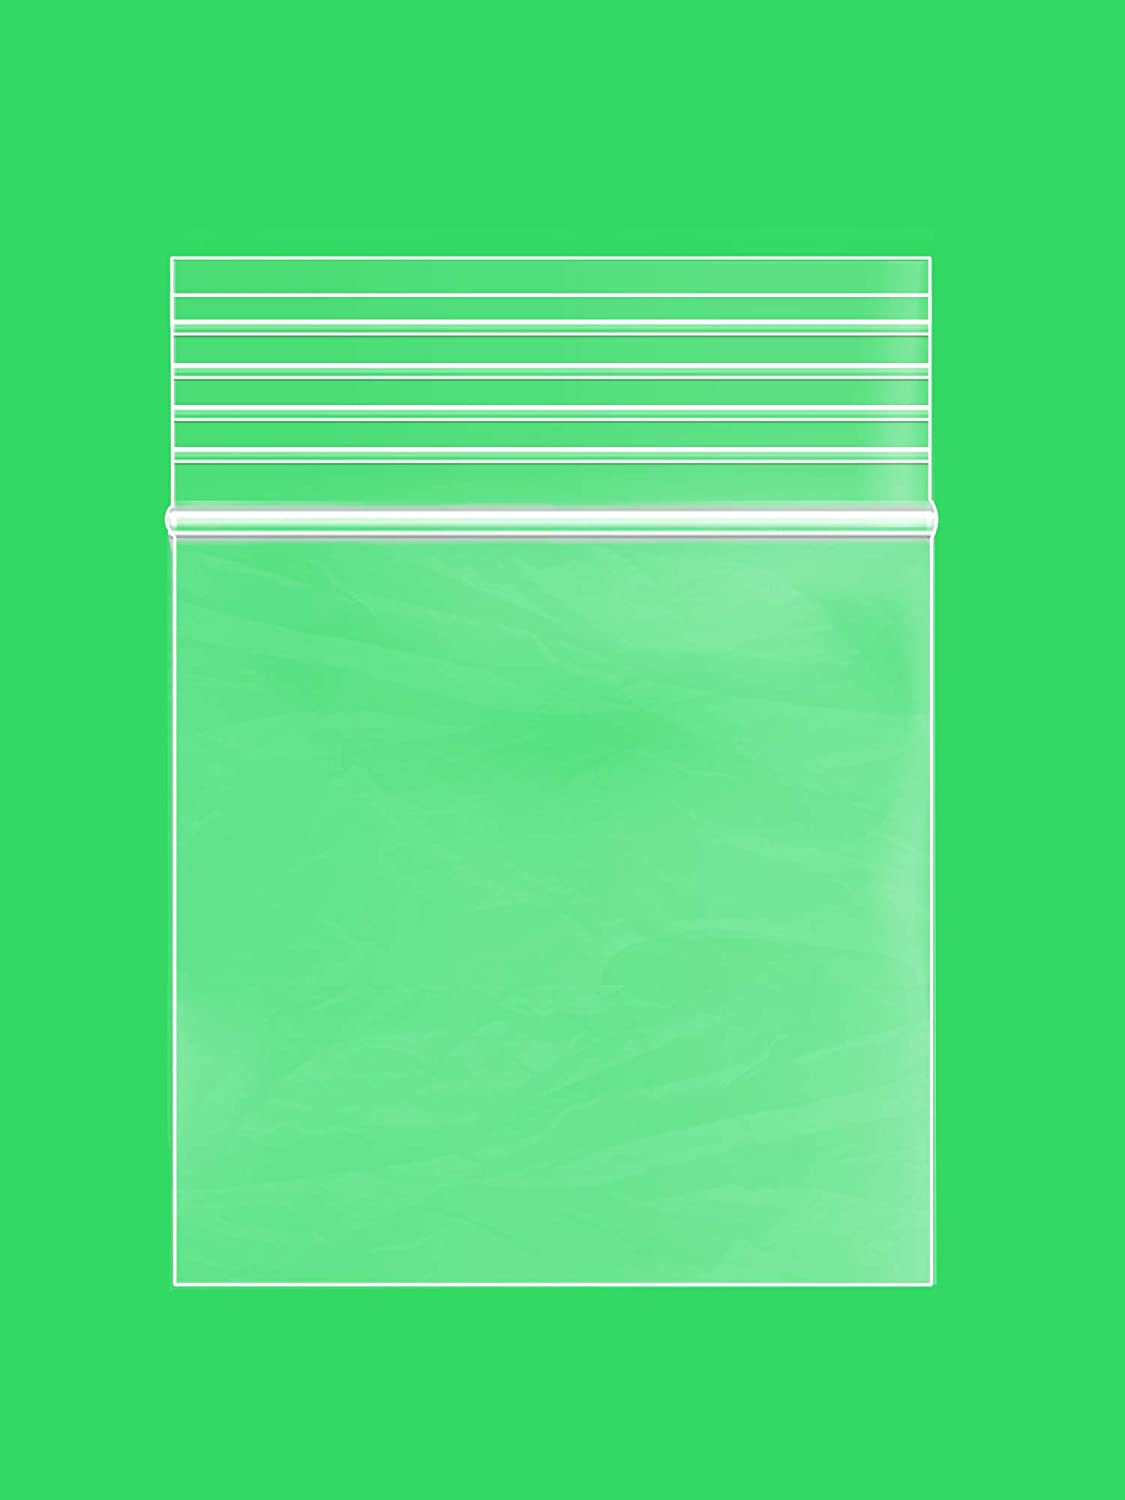 1.25 x 1.25 inches, 2Mil Clear Reclosable Zip Lock Bags, case of 100 GPI Brand